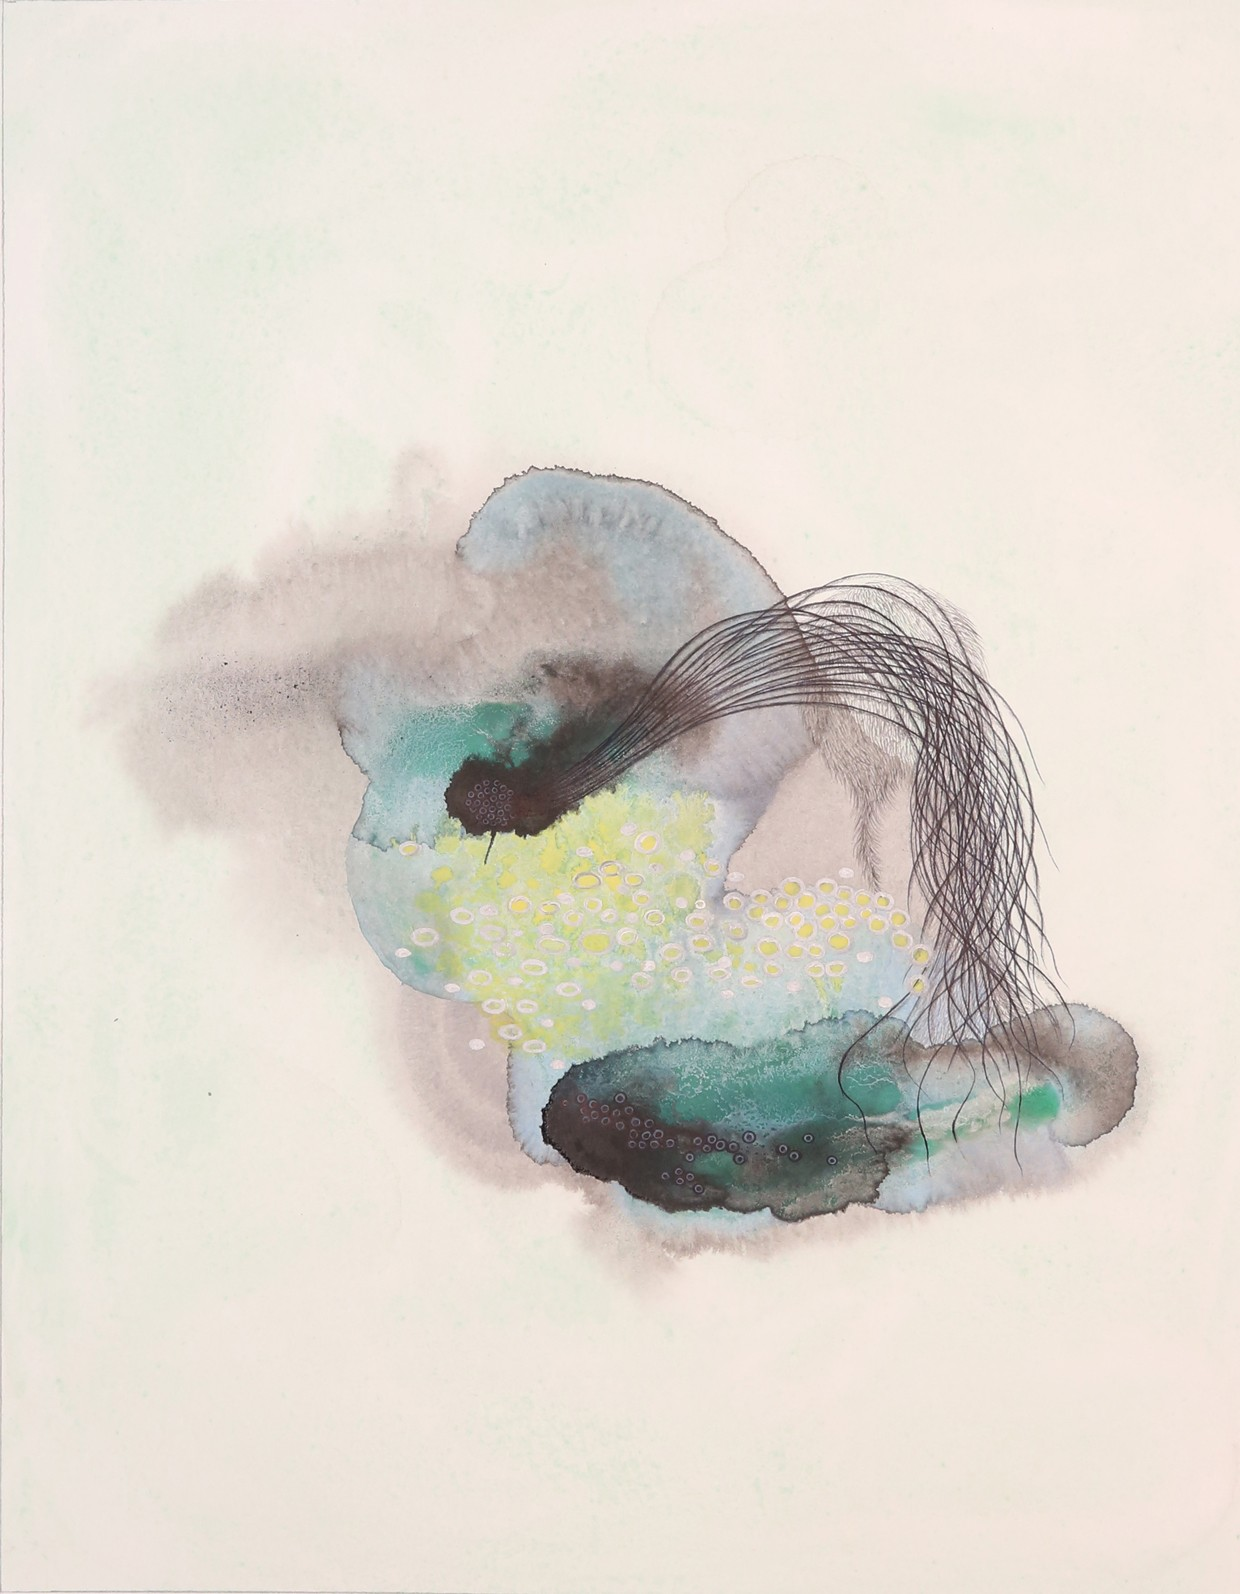 Mu Beini, Flower's Whisper IV, 2019, £200, lithograph, limited edition of 30, ArtChina